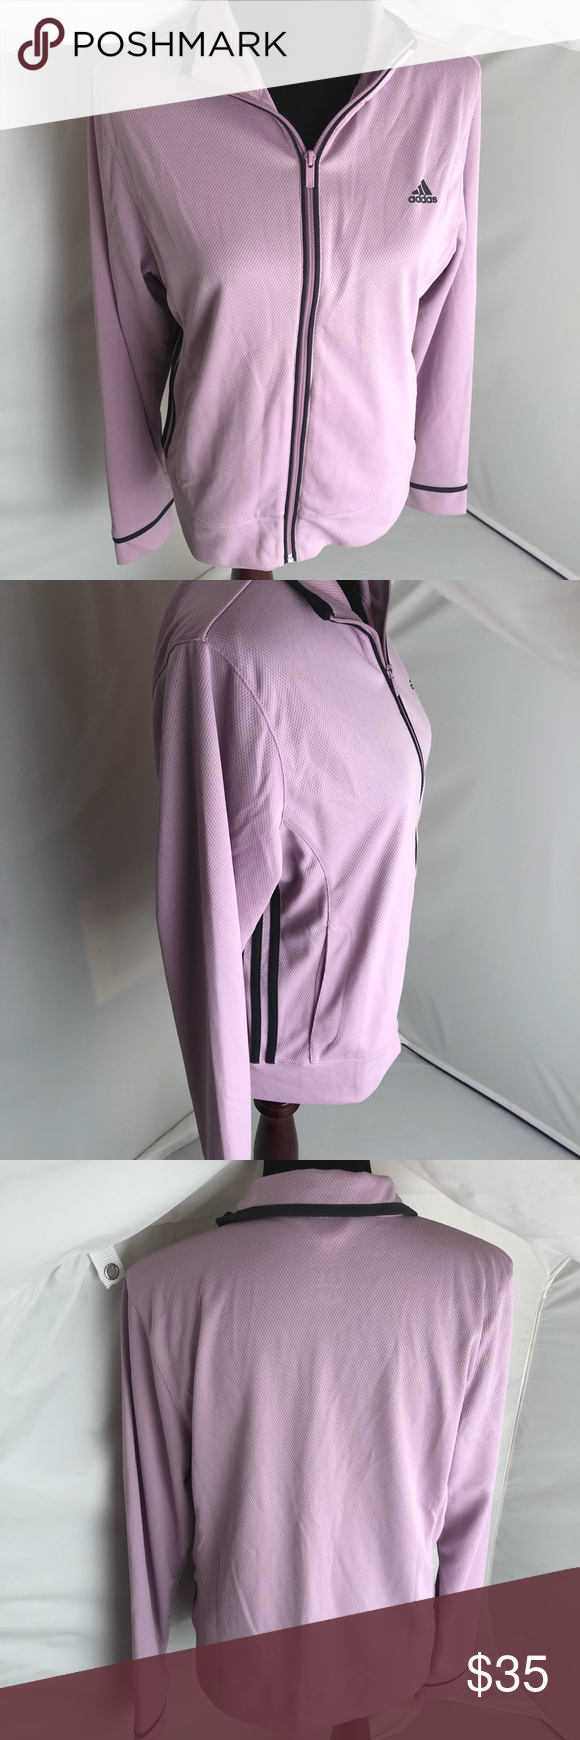 Adidas Lavender Mesh Full Zip Track Jacket L Adidas Lavender Mesh Full Zip Track Jacket L Excellent Condition Adidas Tops Jackets Track Jackets Clothes Design [ 1740 x 580 Pixel ]